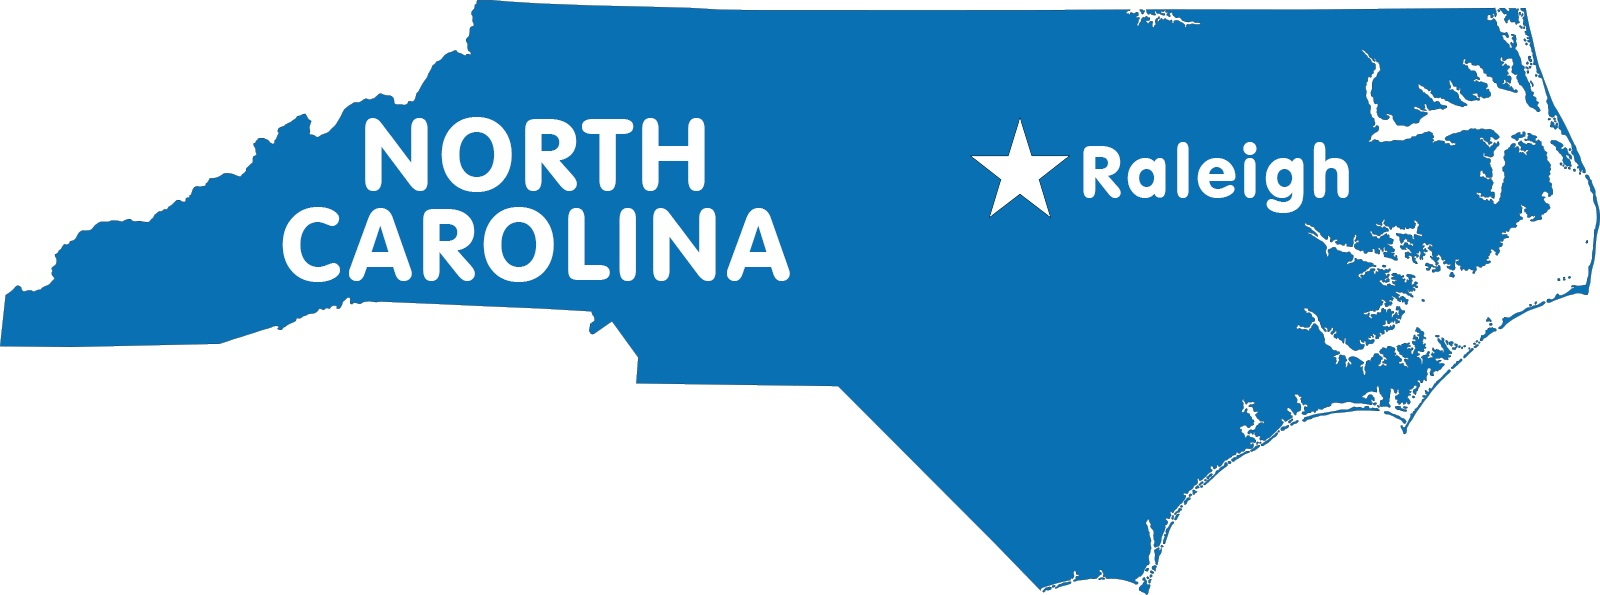 North Carolina Capital Map | Large Printable High Resolution and Standard Map